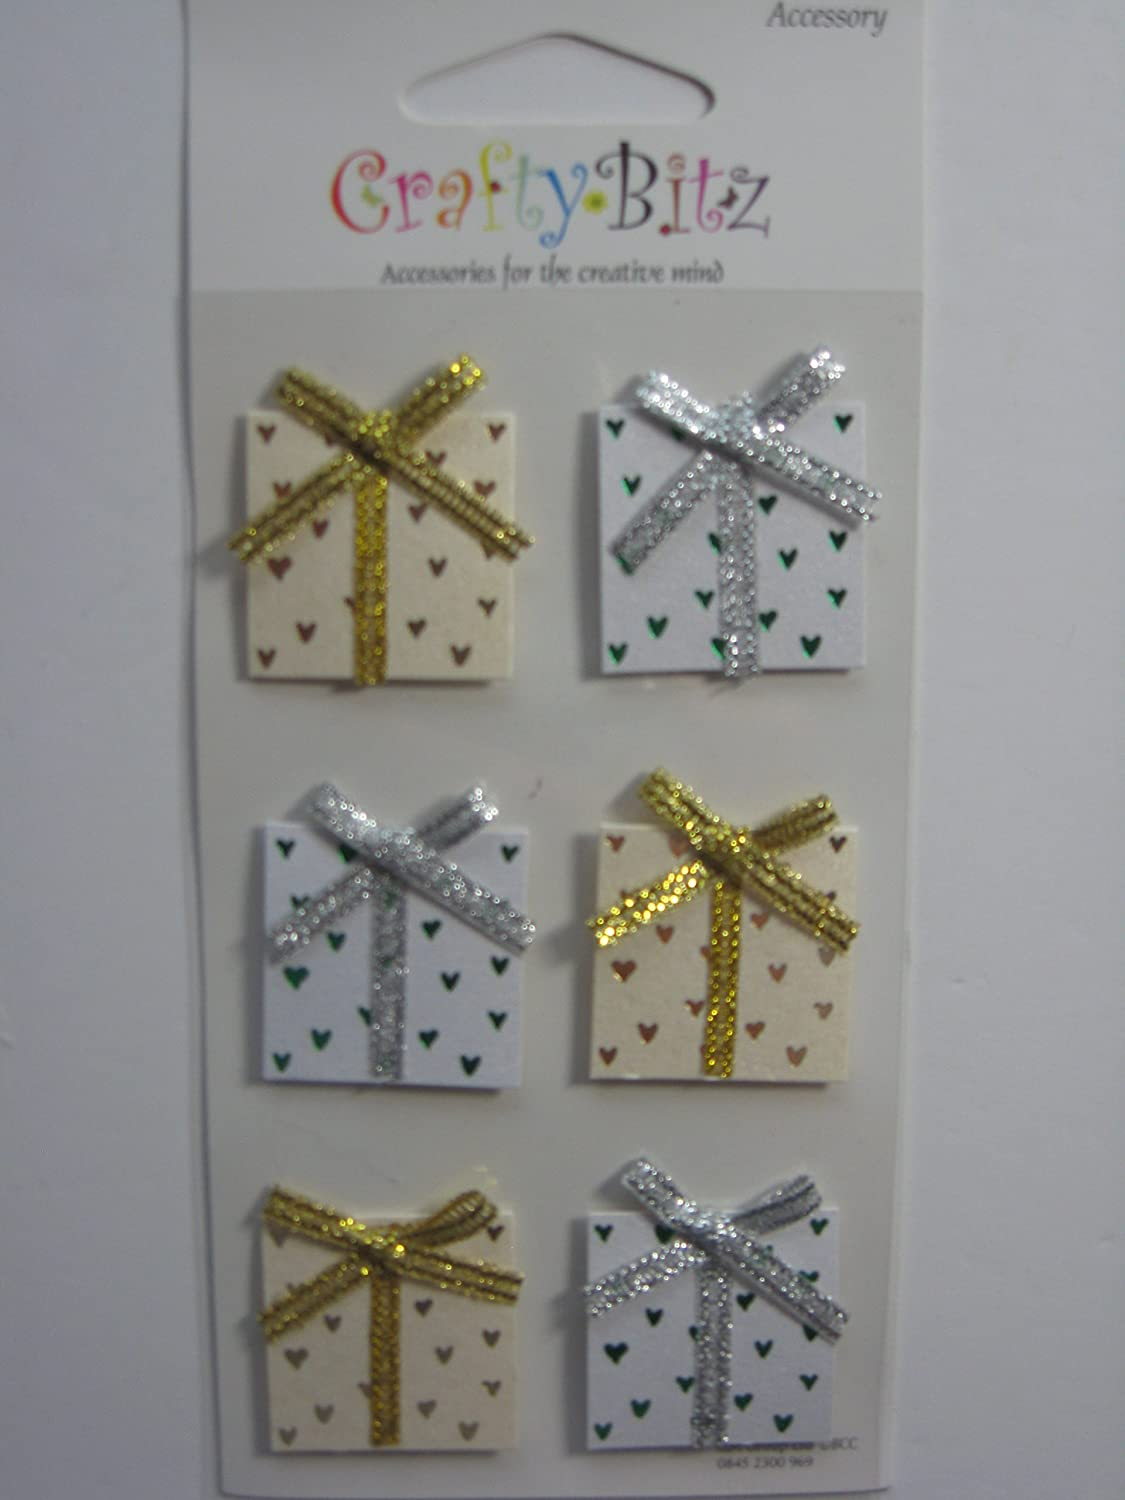 STICK ON EMBELLISHMENTS WEDDING GIFTS WITH BOWS